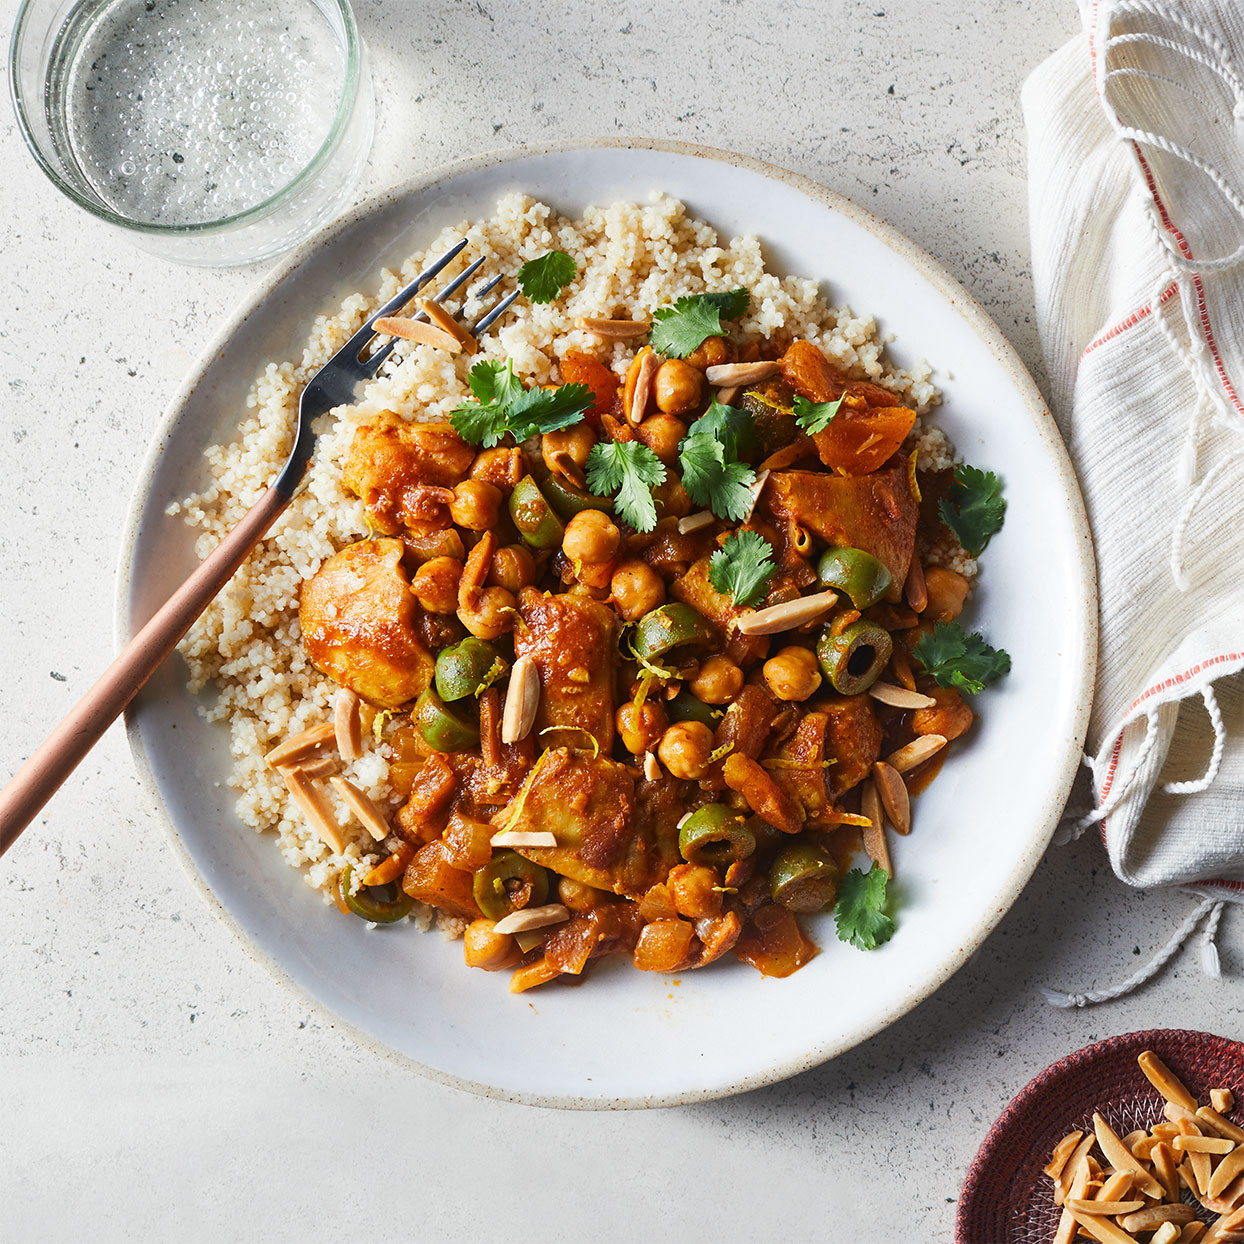 Moroccan Chicken Tagine with Apricots & Olives Carolyn Malcoun